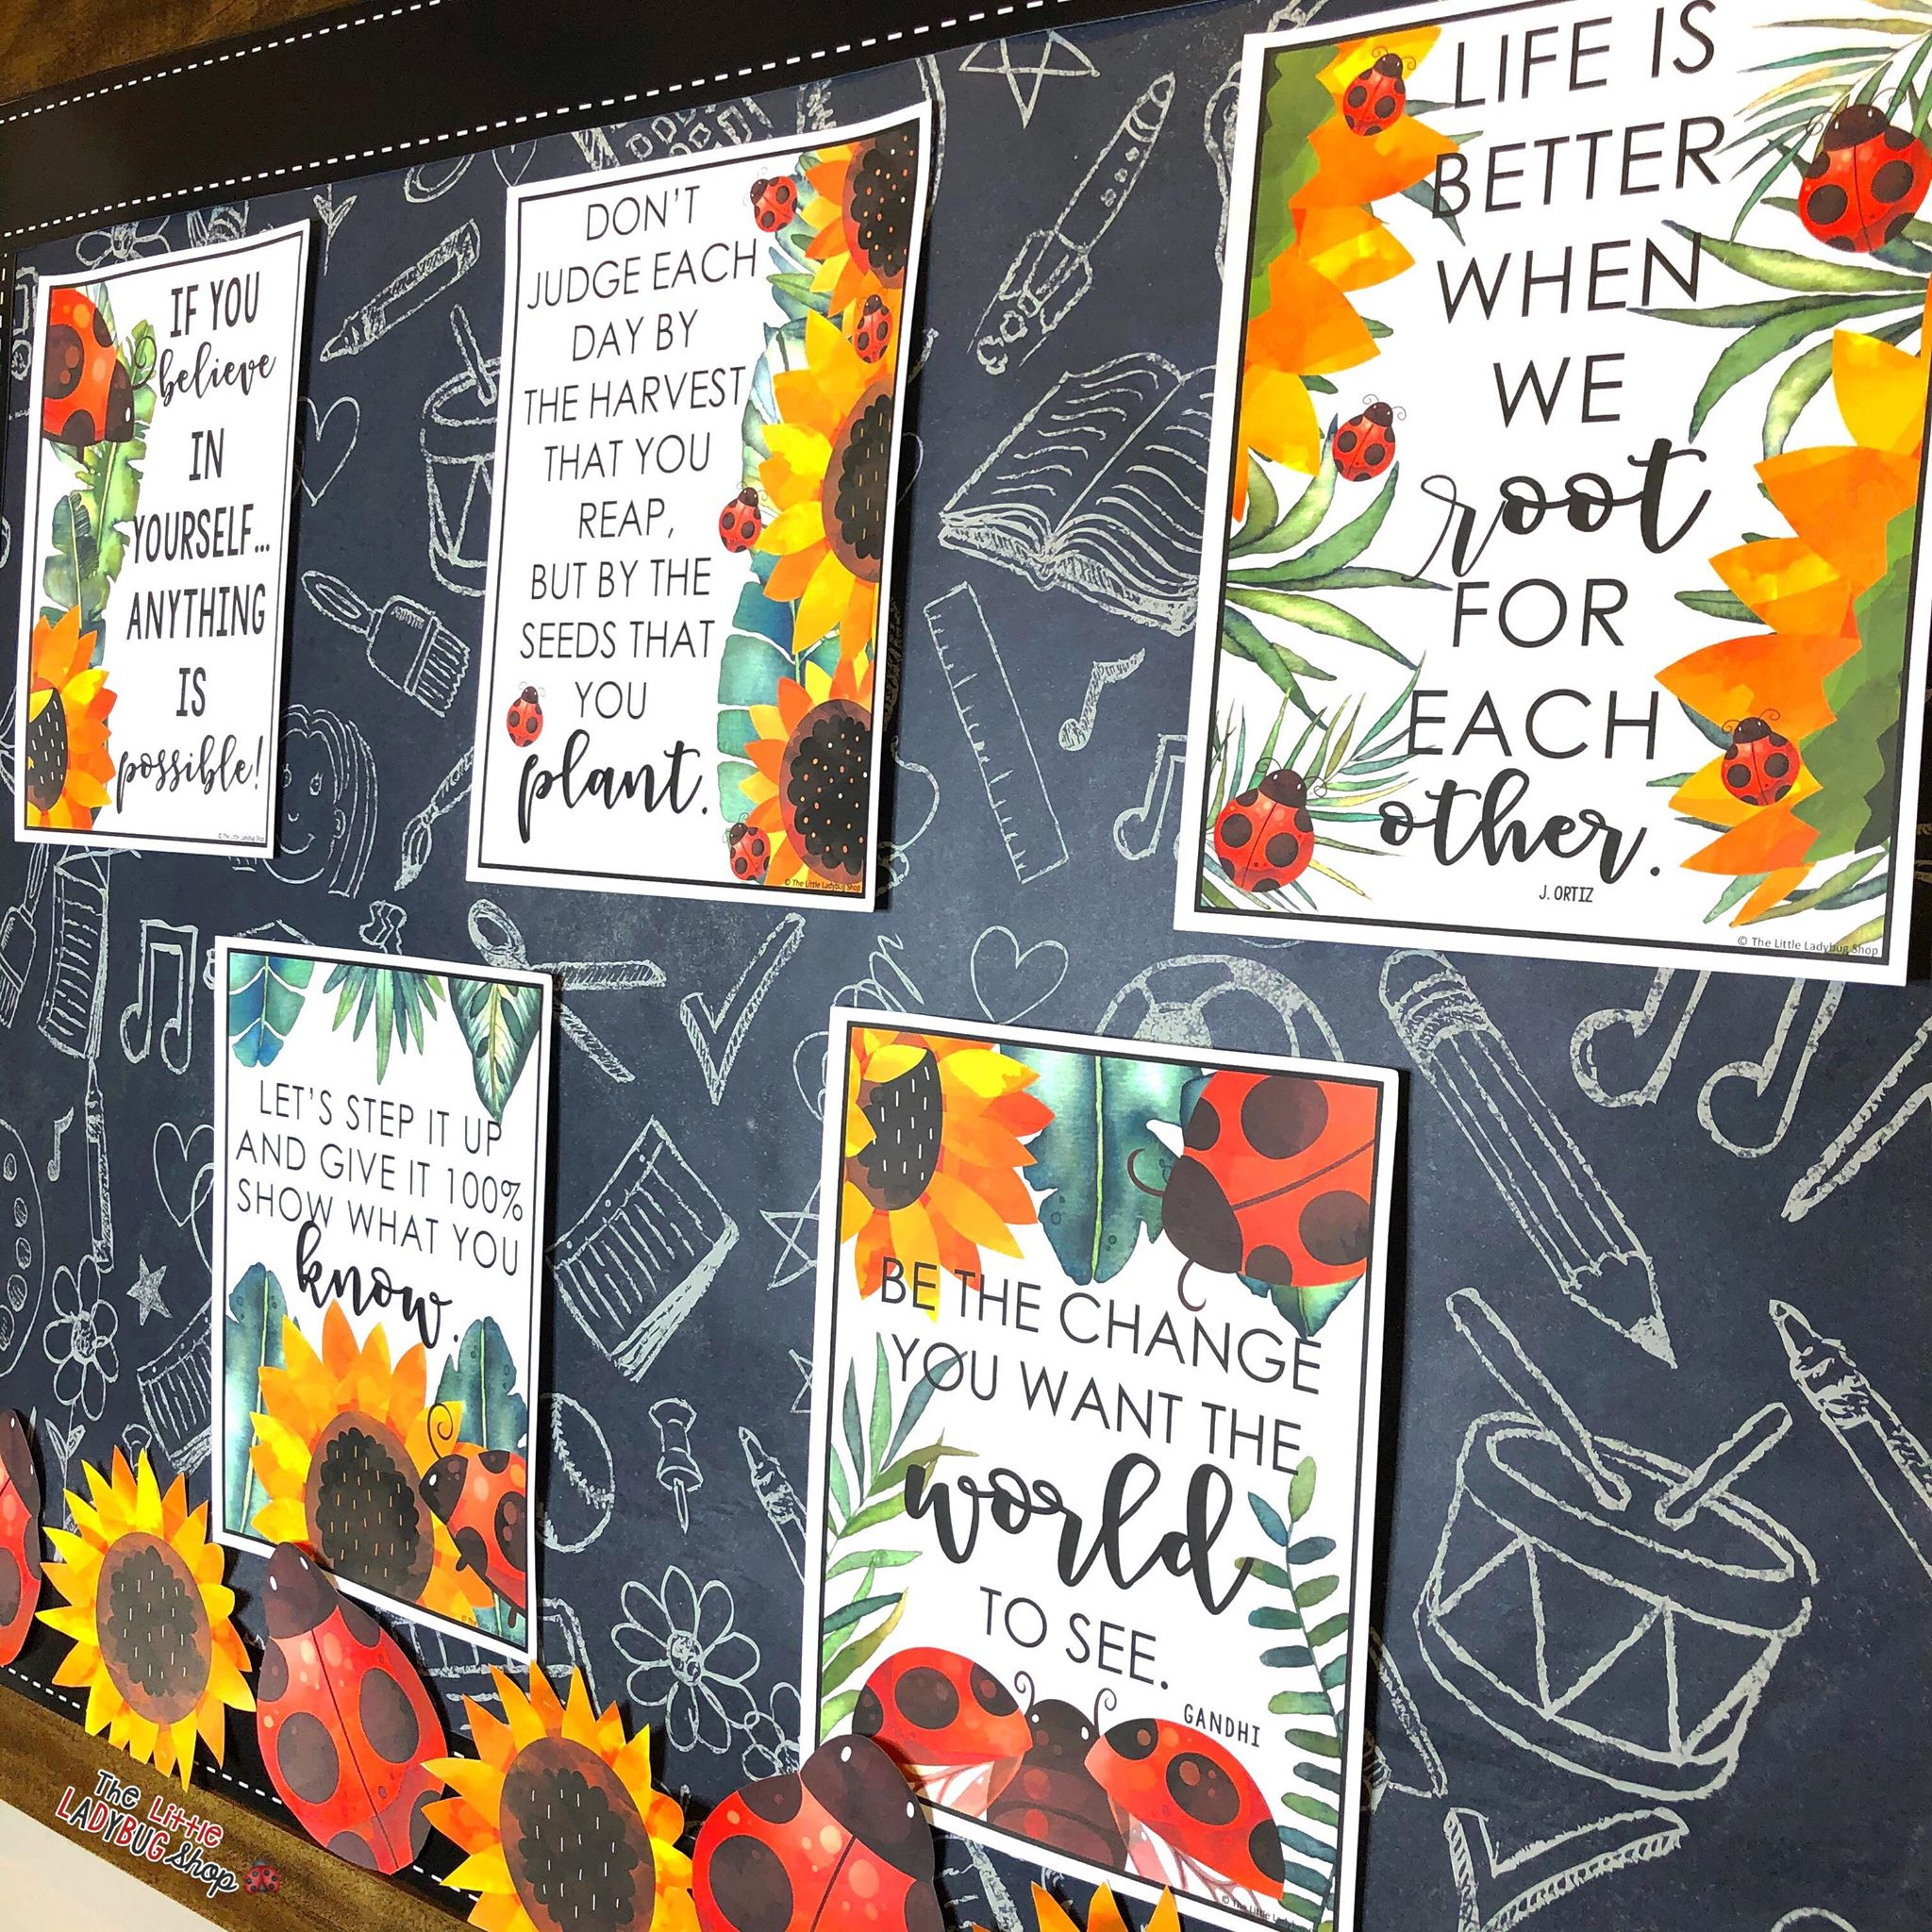 Ladybug and Sunflower Theme Bulletin Board Ideas for Teachers